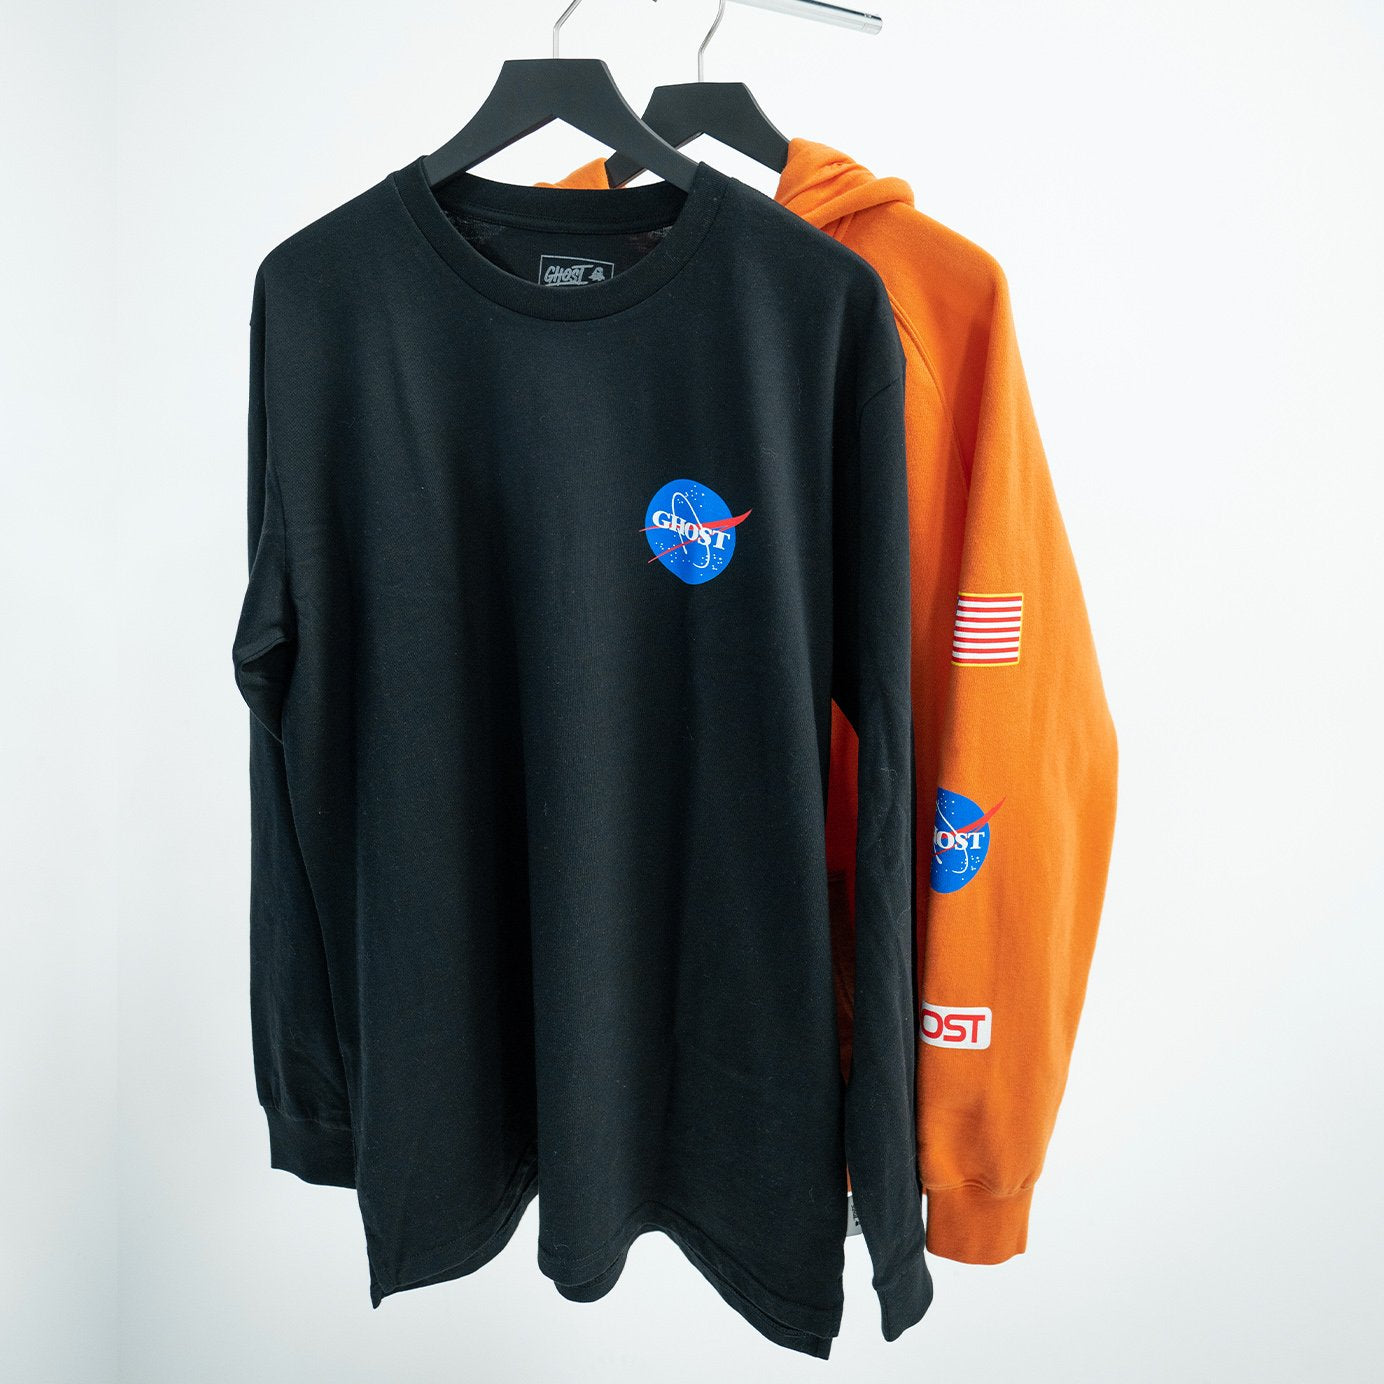 Apparel |GHOST® SPACE LONG SLEEVE